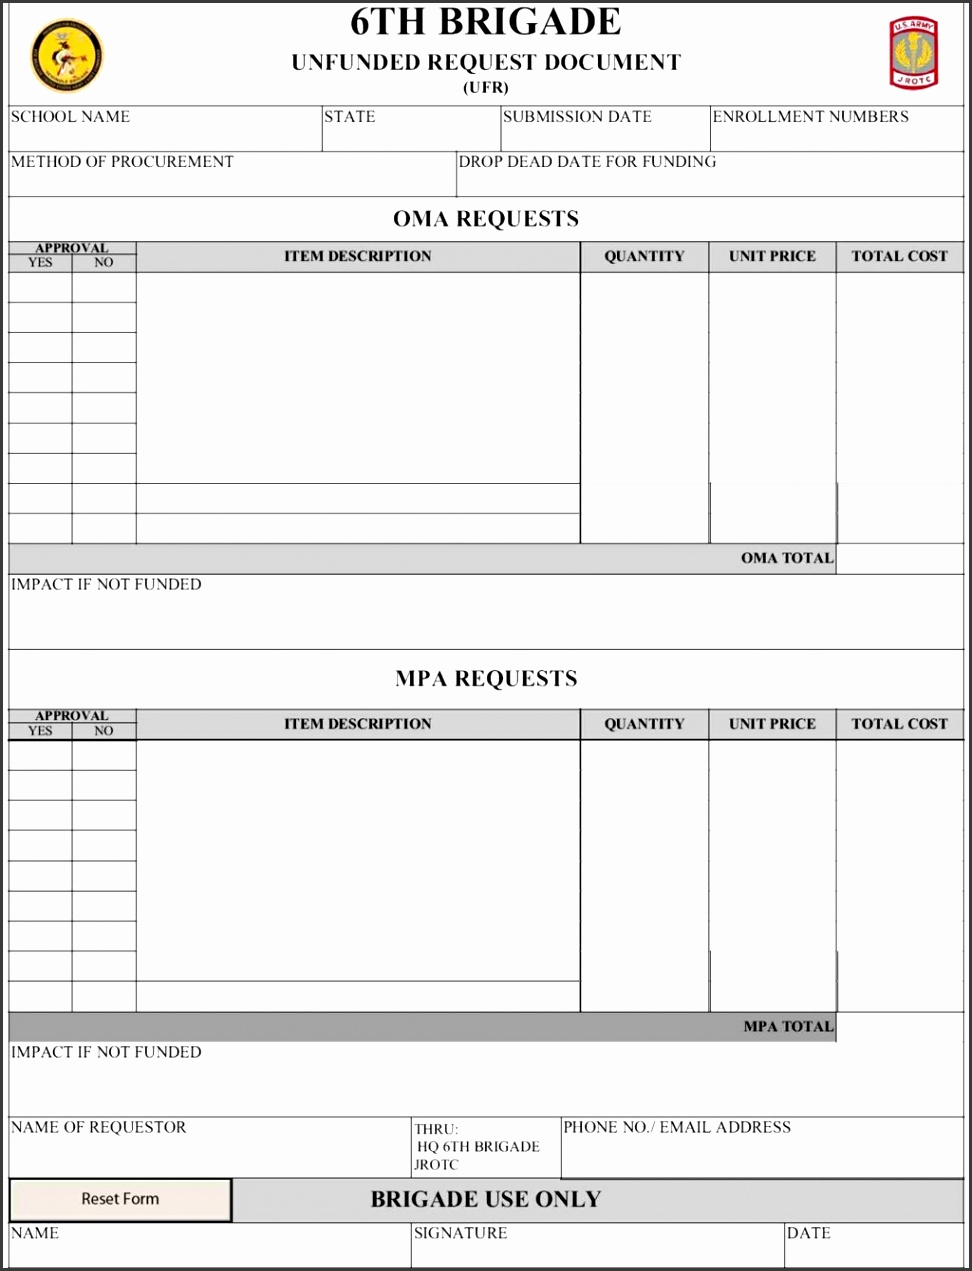 purchase requisition form template excel - Romeo.landinez.co